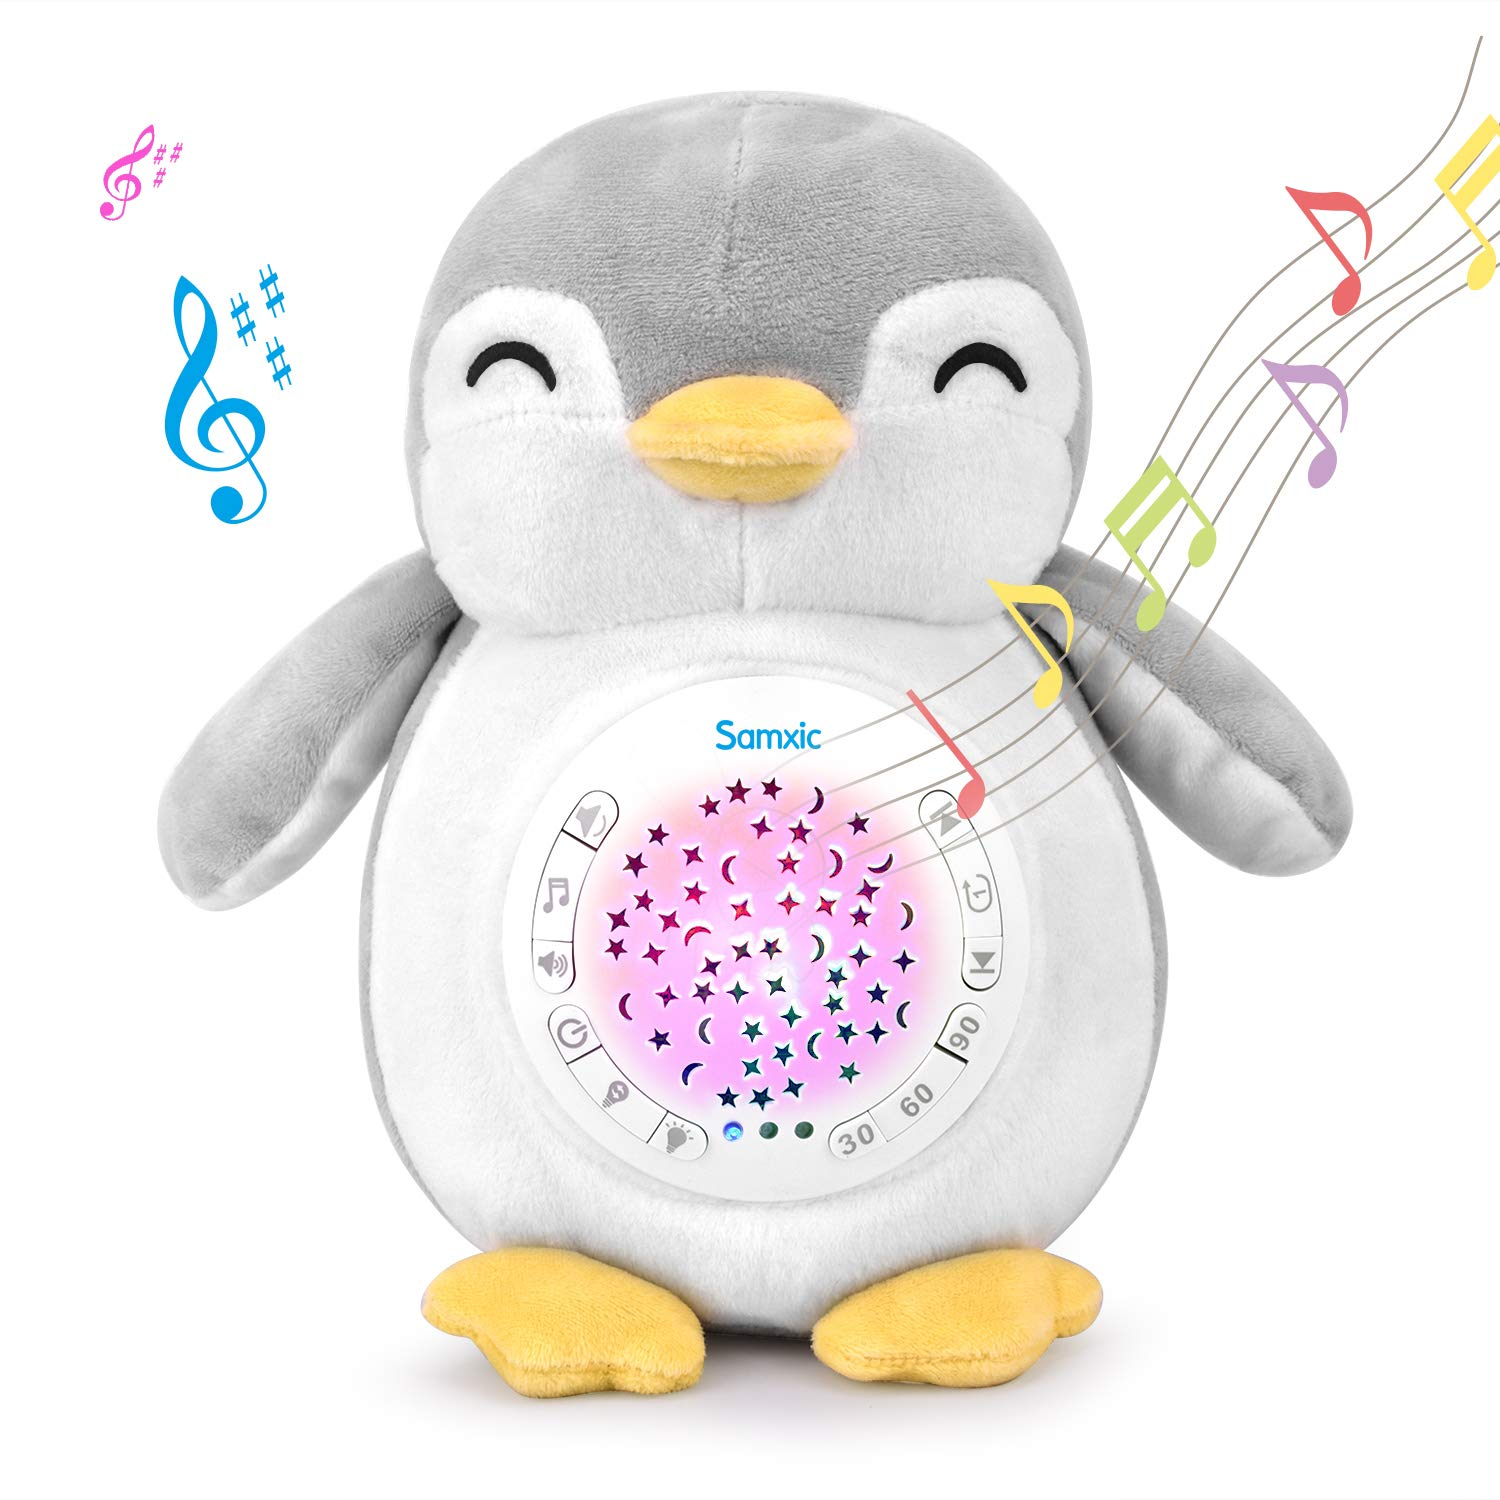 Samxic Baby Shower Gift - White Noise Sound Machine, Sleep Soother, Baby Sound Machine with Sleep Aid Night Light, Lullabies & Timer Setting (Penguin) by Samxic